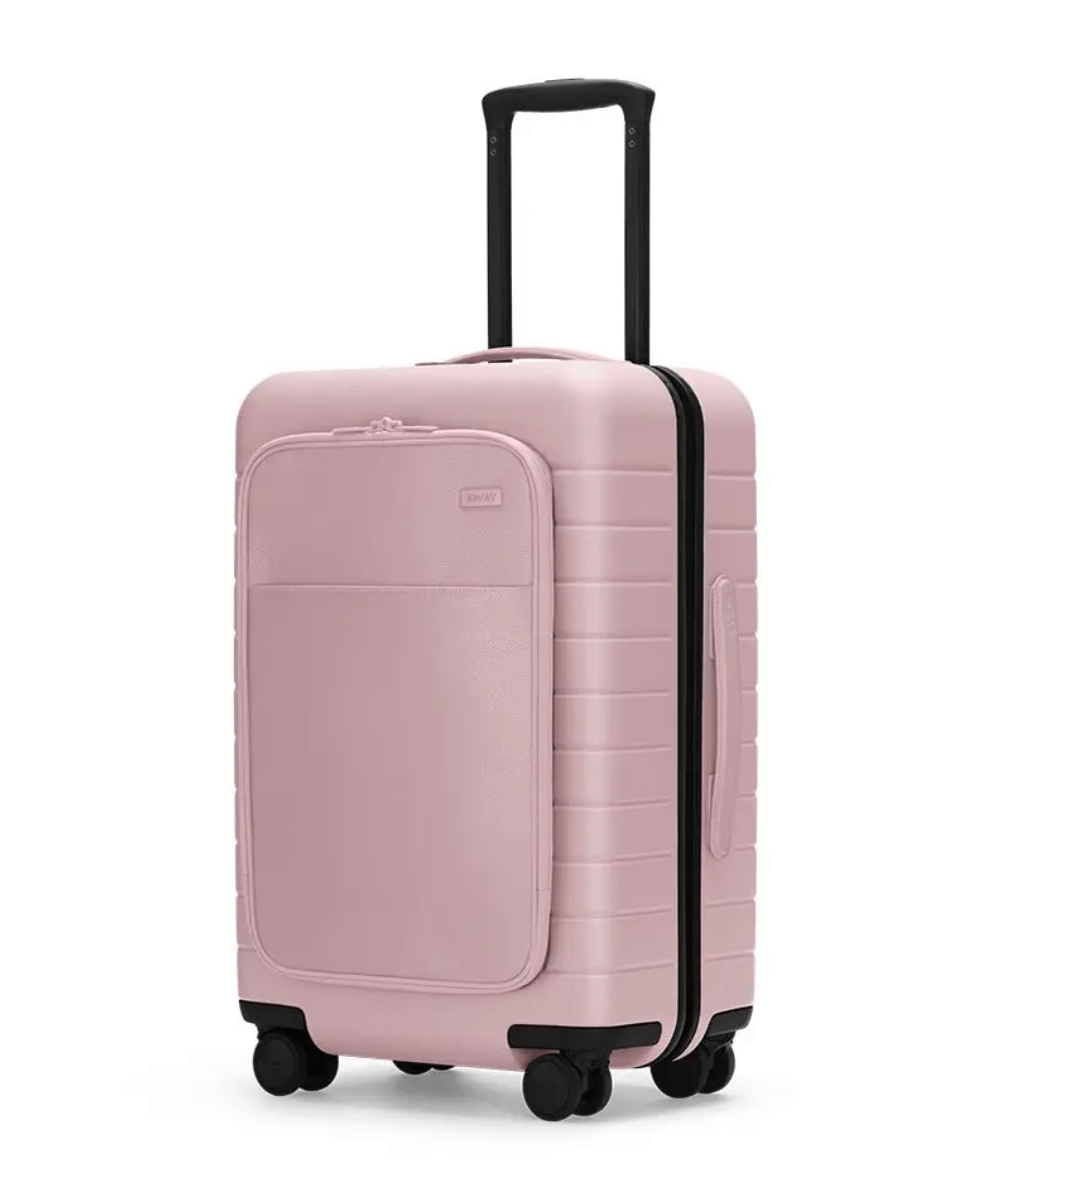 Away's Bigger Carry-On with Pocket